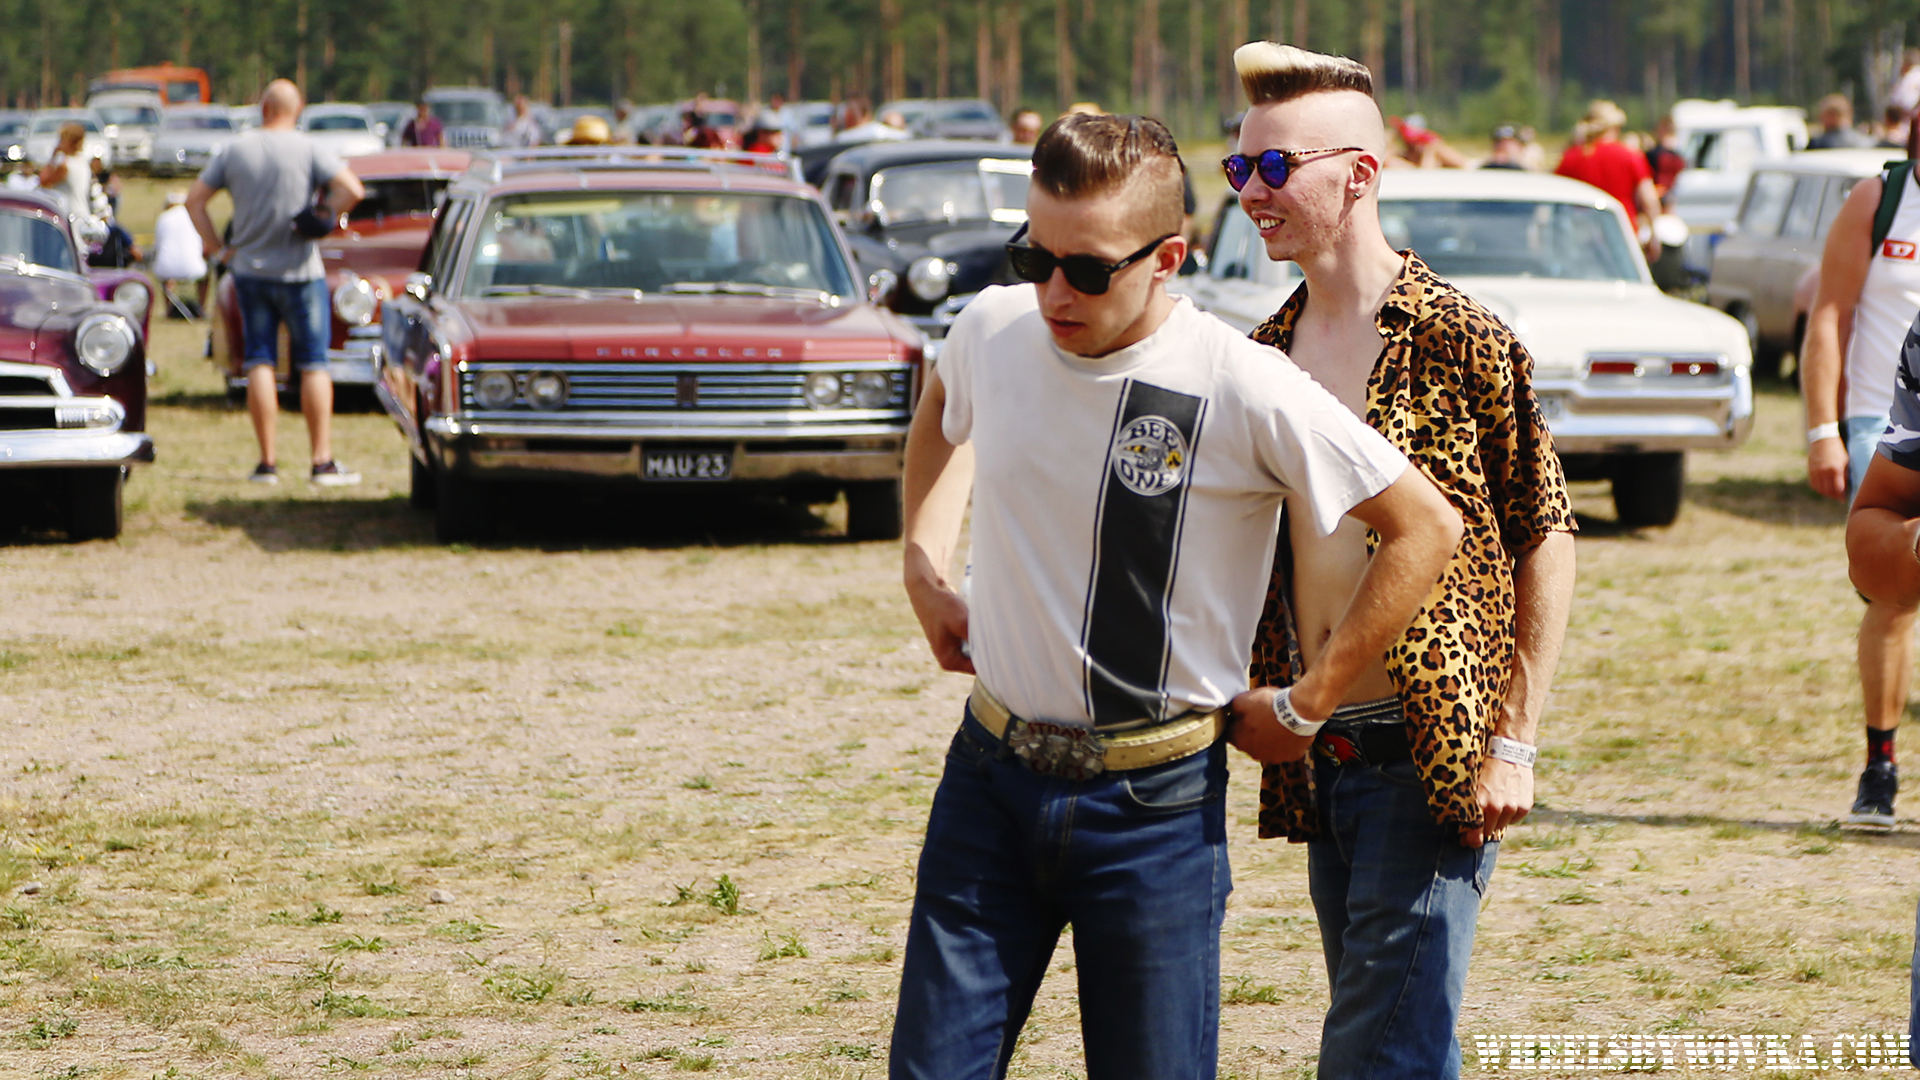 do-dads-vintage-drag-show-finland-by-wheelsbywovka-17